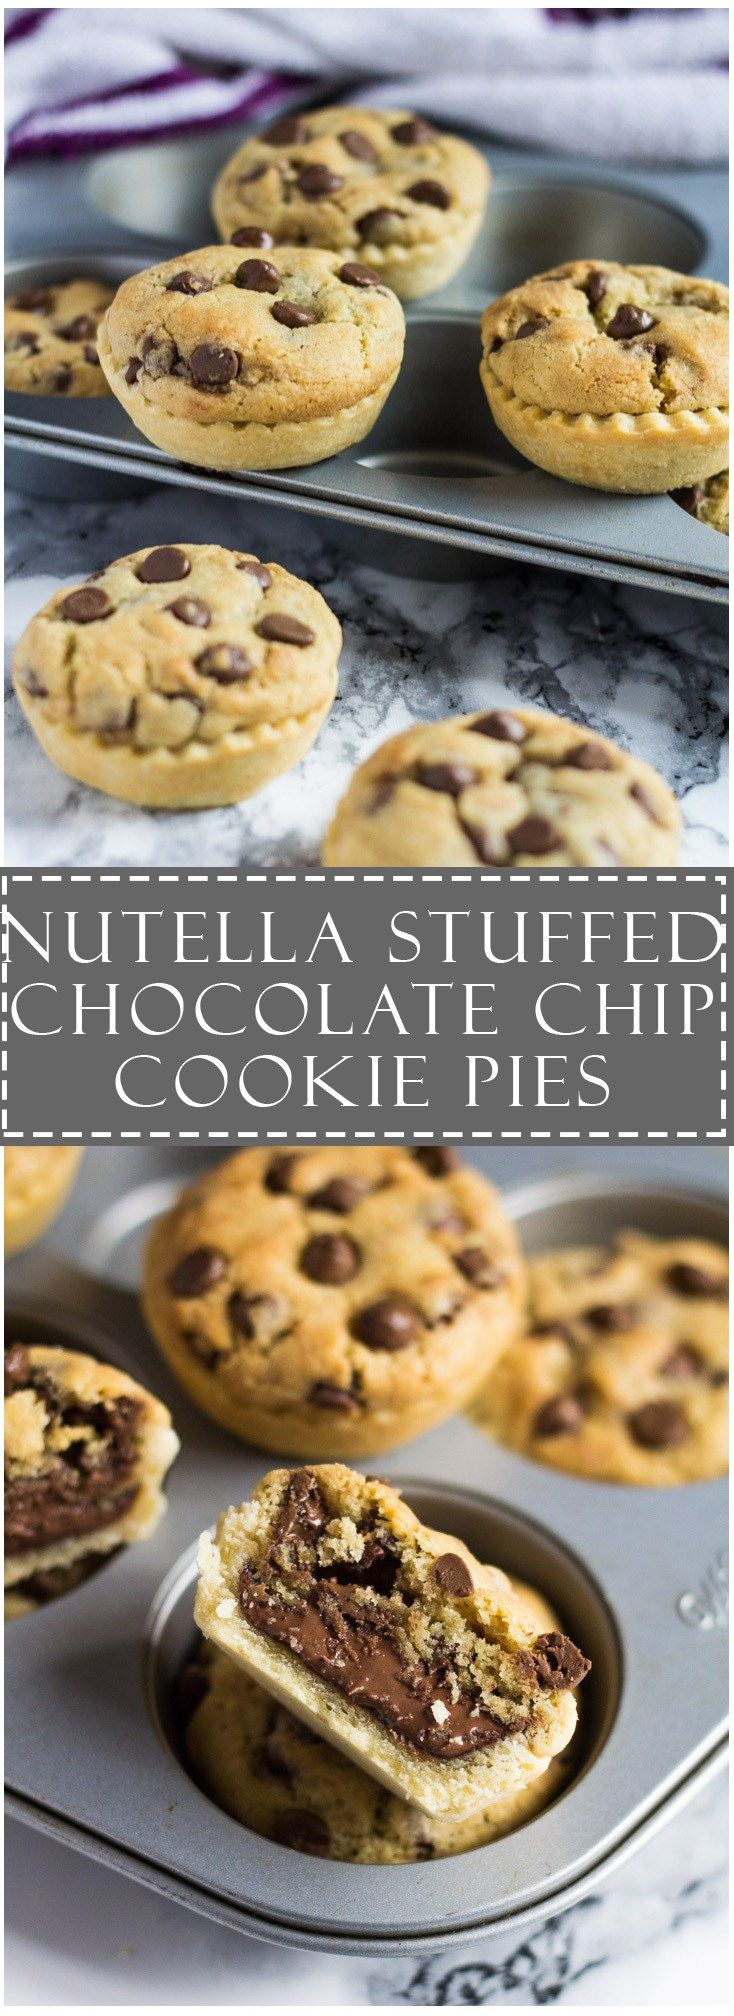 #Nutella Stuffed Chocolate Chip #Cookie #Pies | Marsha's Baking Addiction !awesome!!